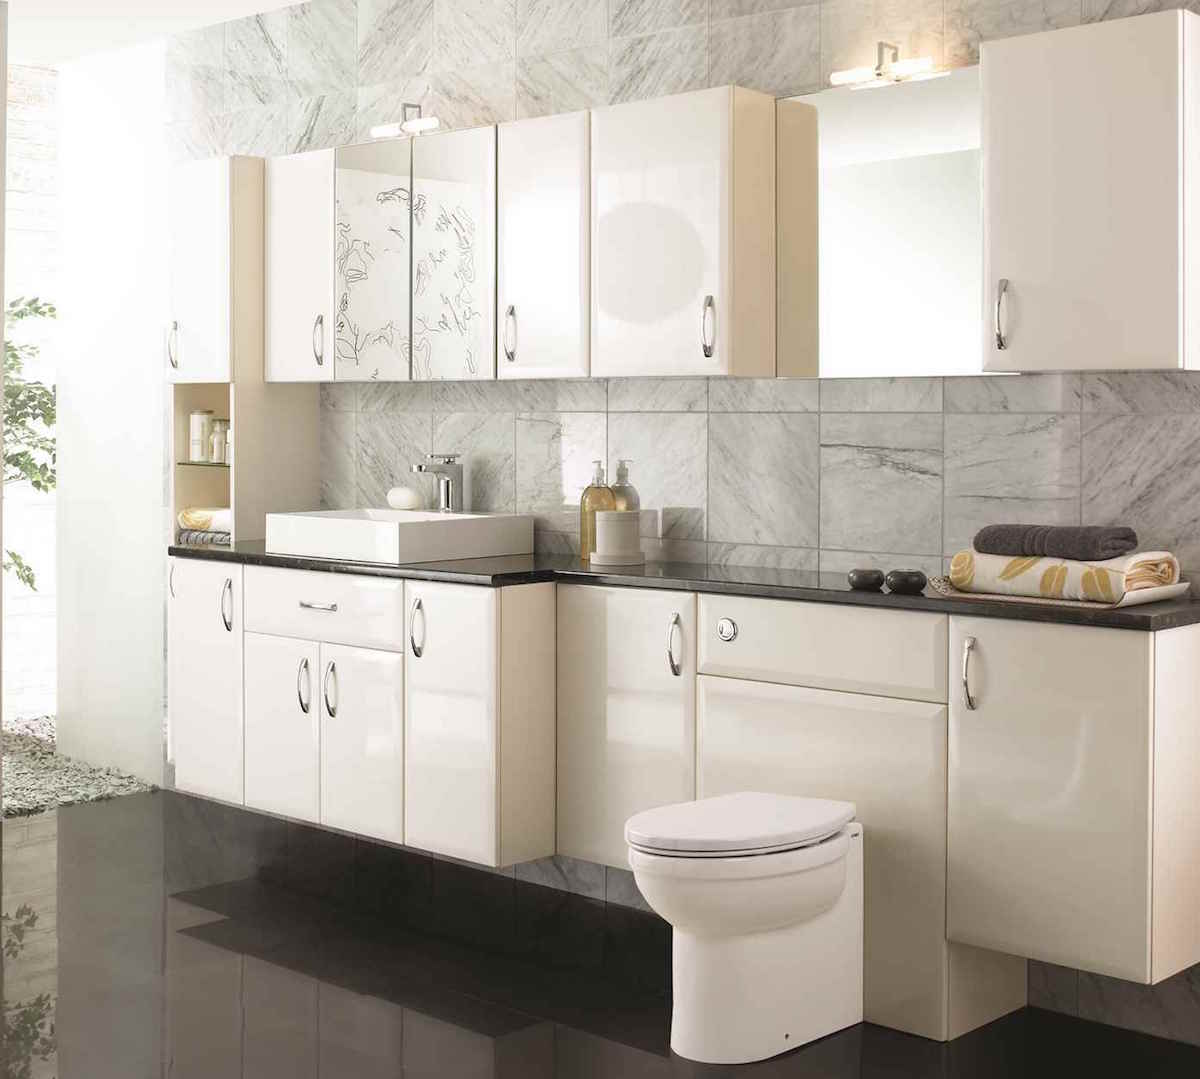 Tilemaze fitted bathroom furniture cabinets for Bathroom furniture